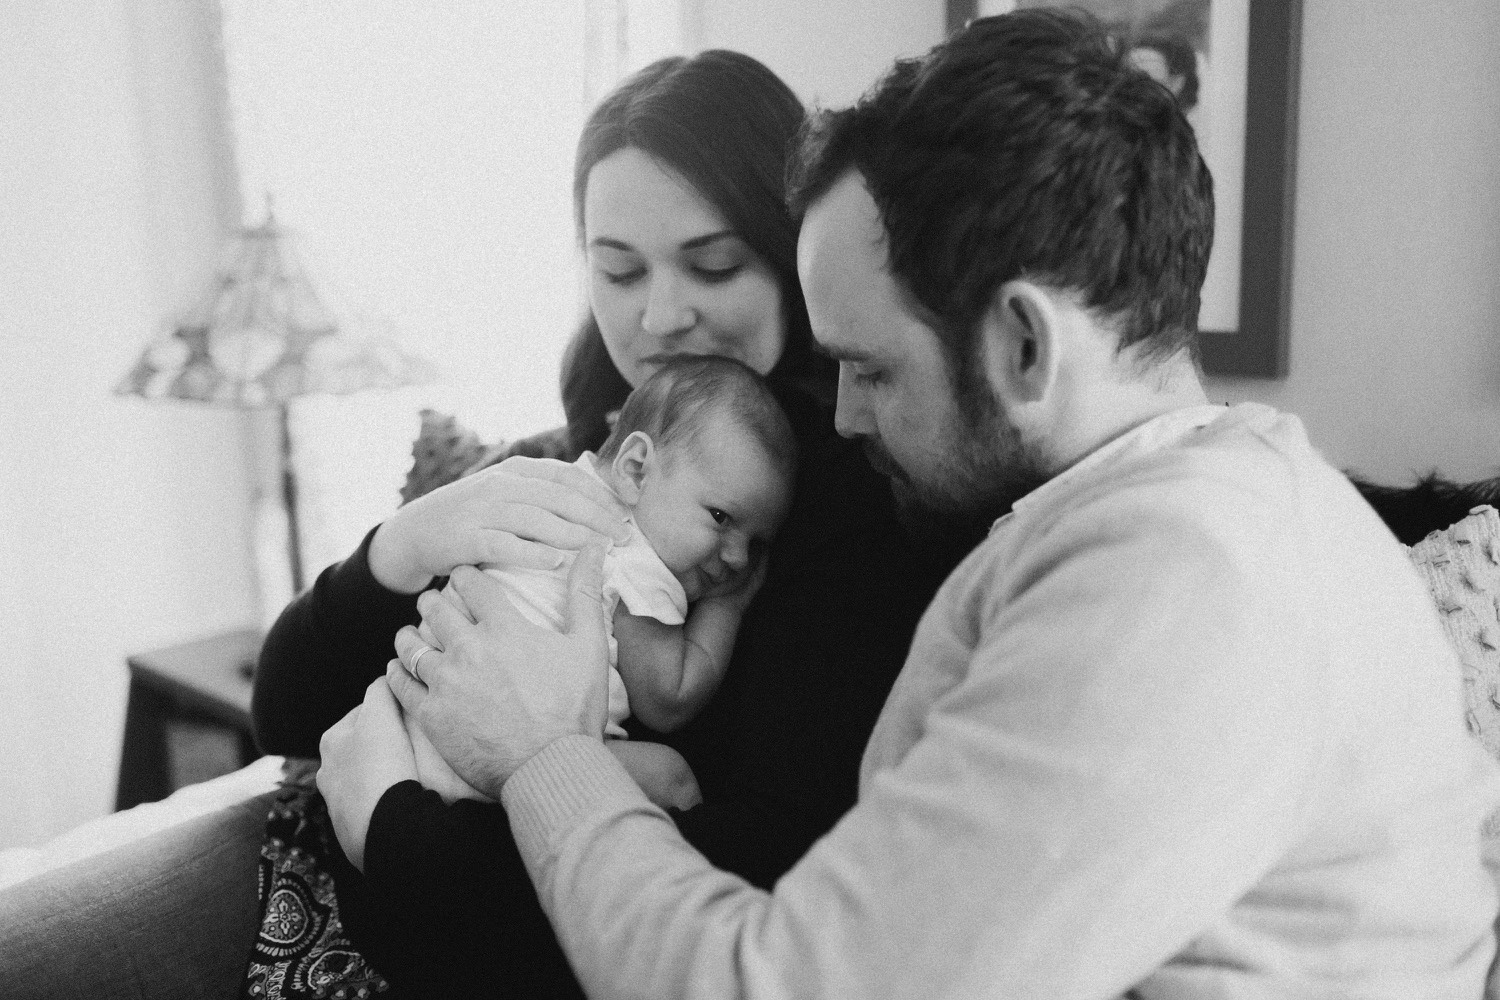 0016_16_10_12_rader_family_0040_newborn,_family_lifestyle,_Candid_photography,.jpg